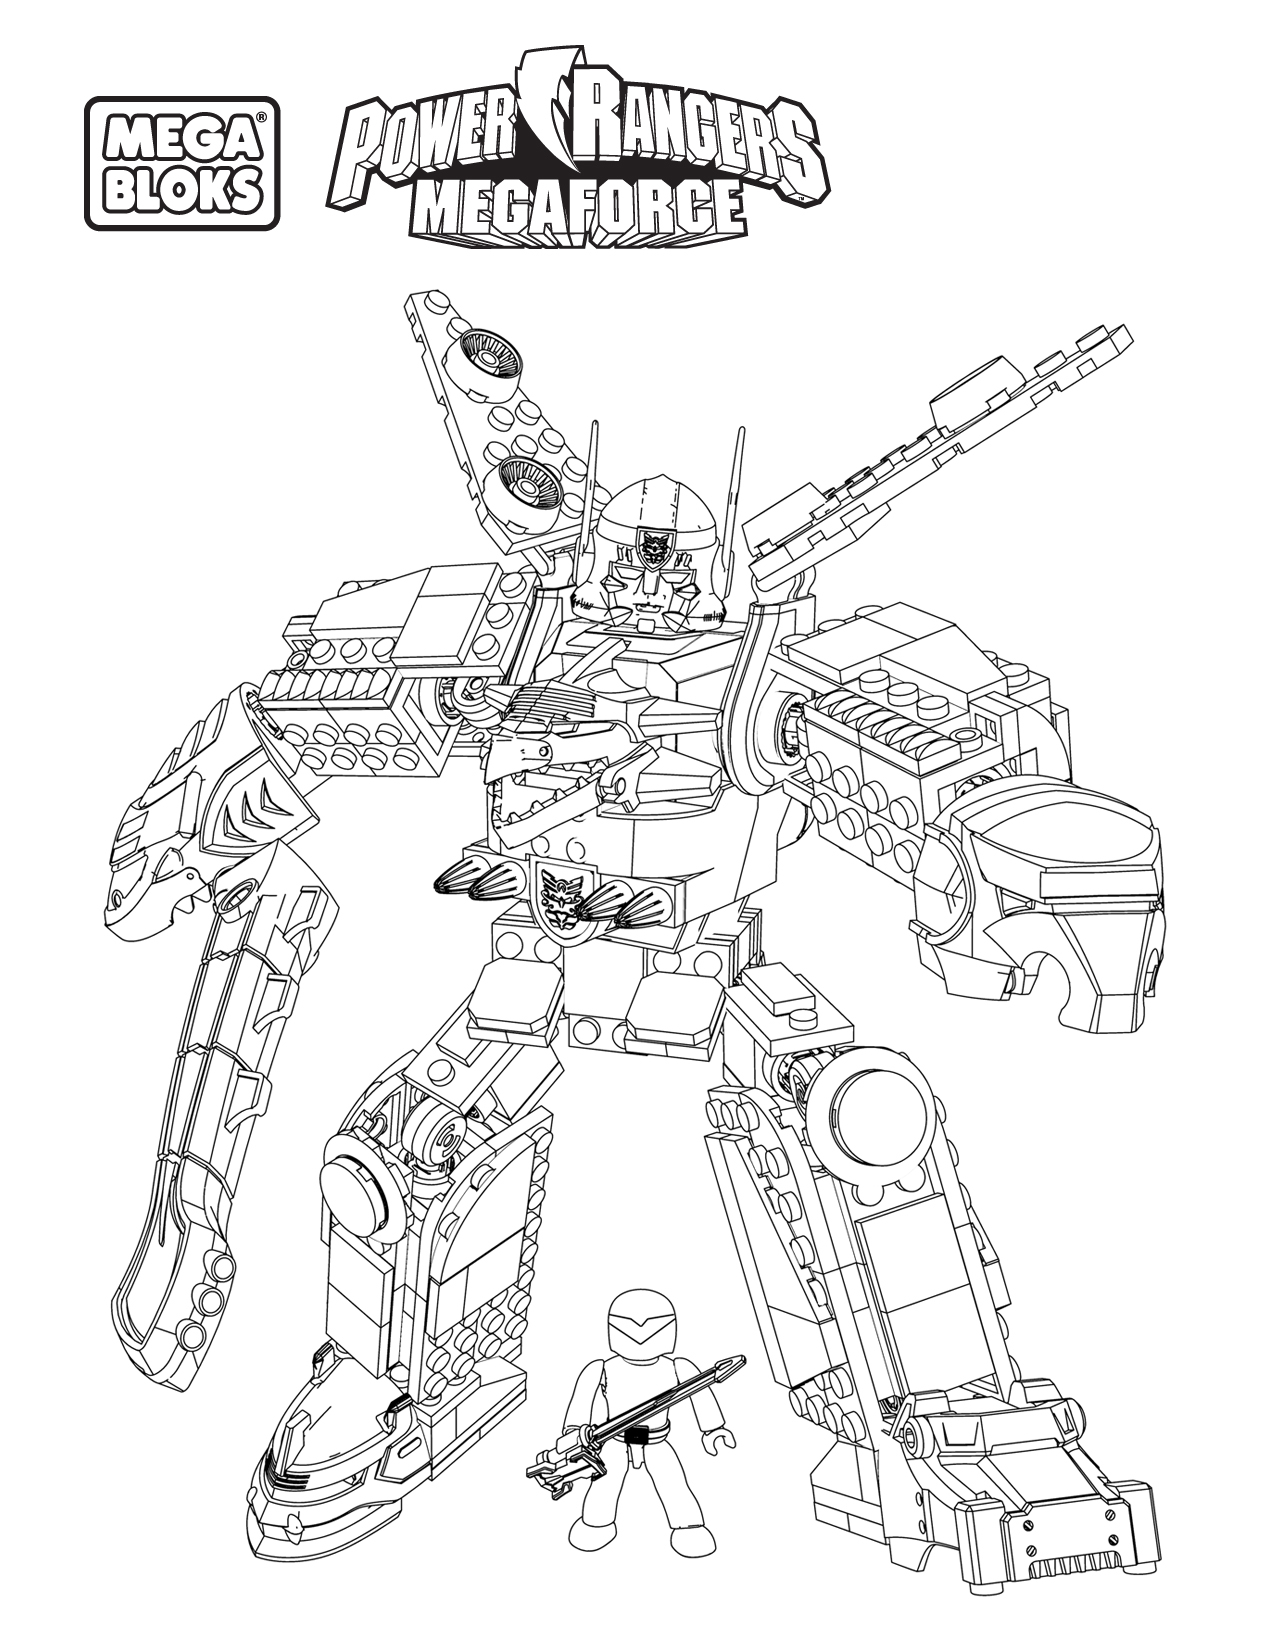 halo mega block coloring pages - photo#10